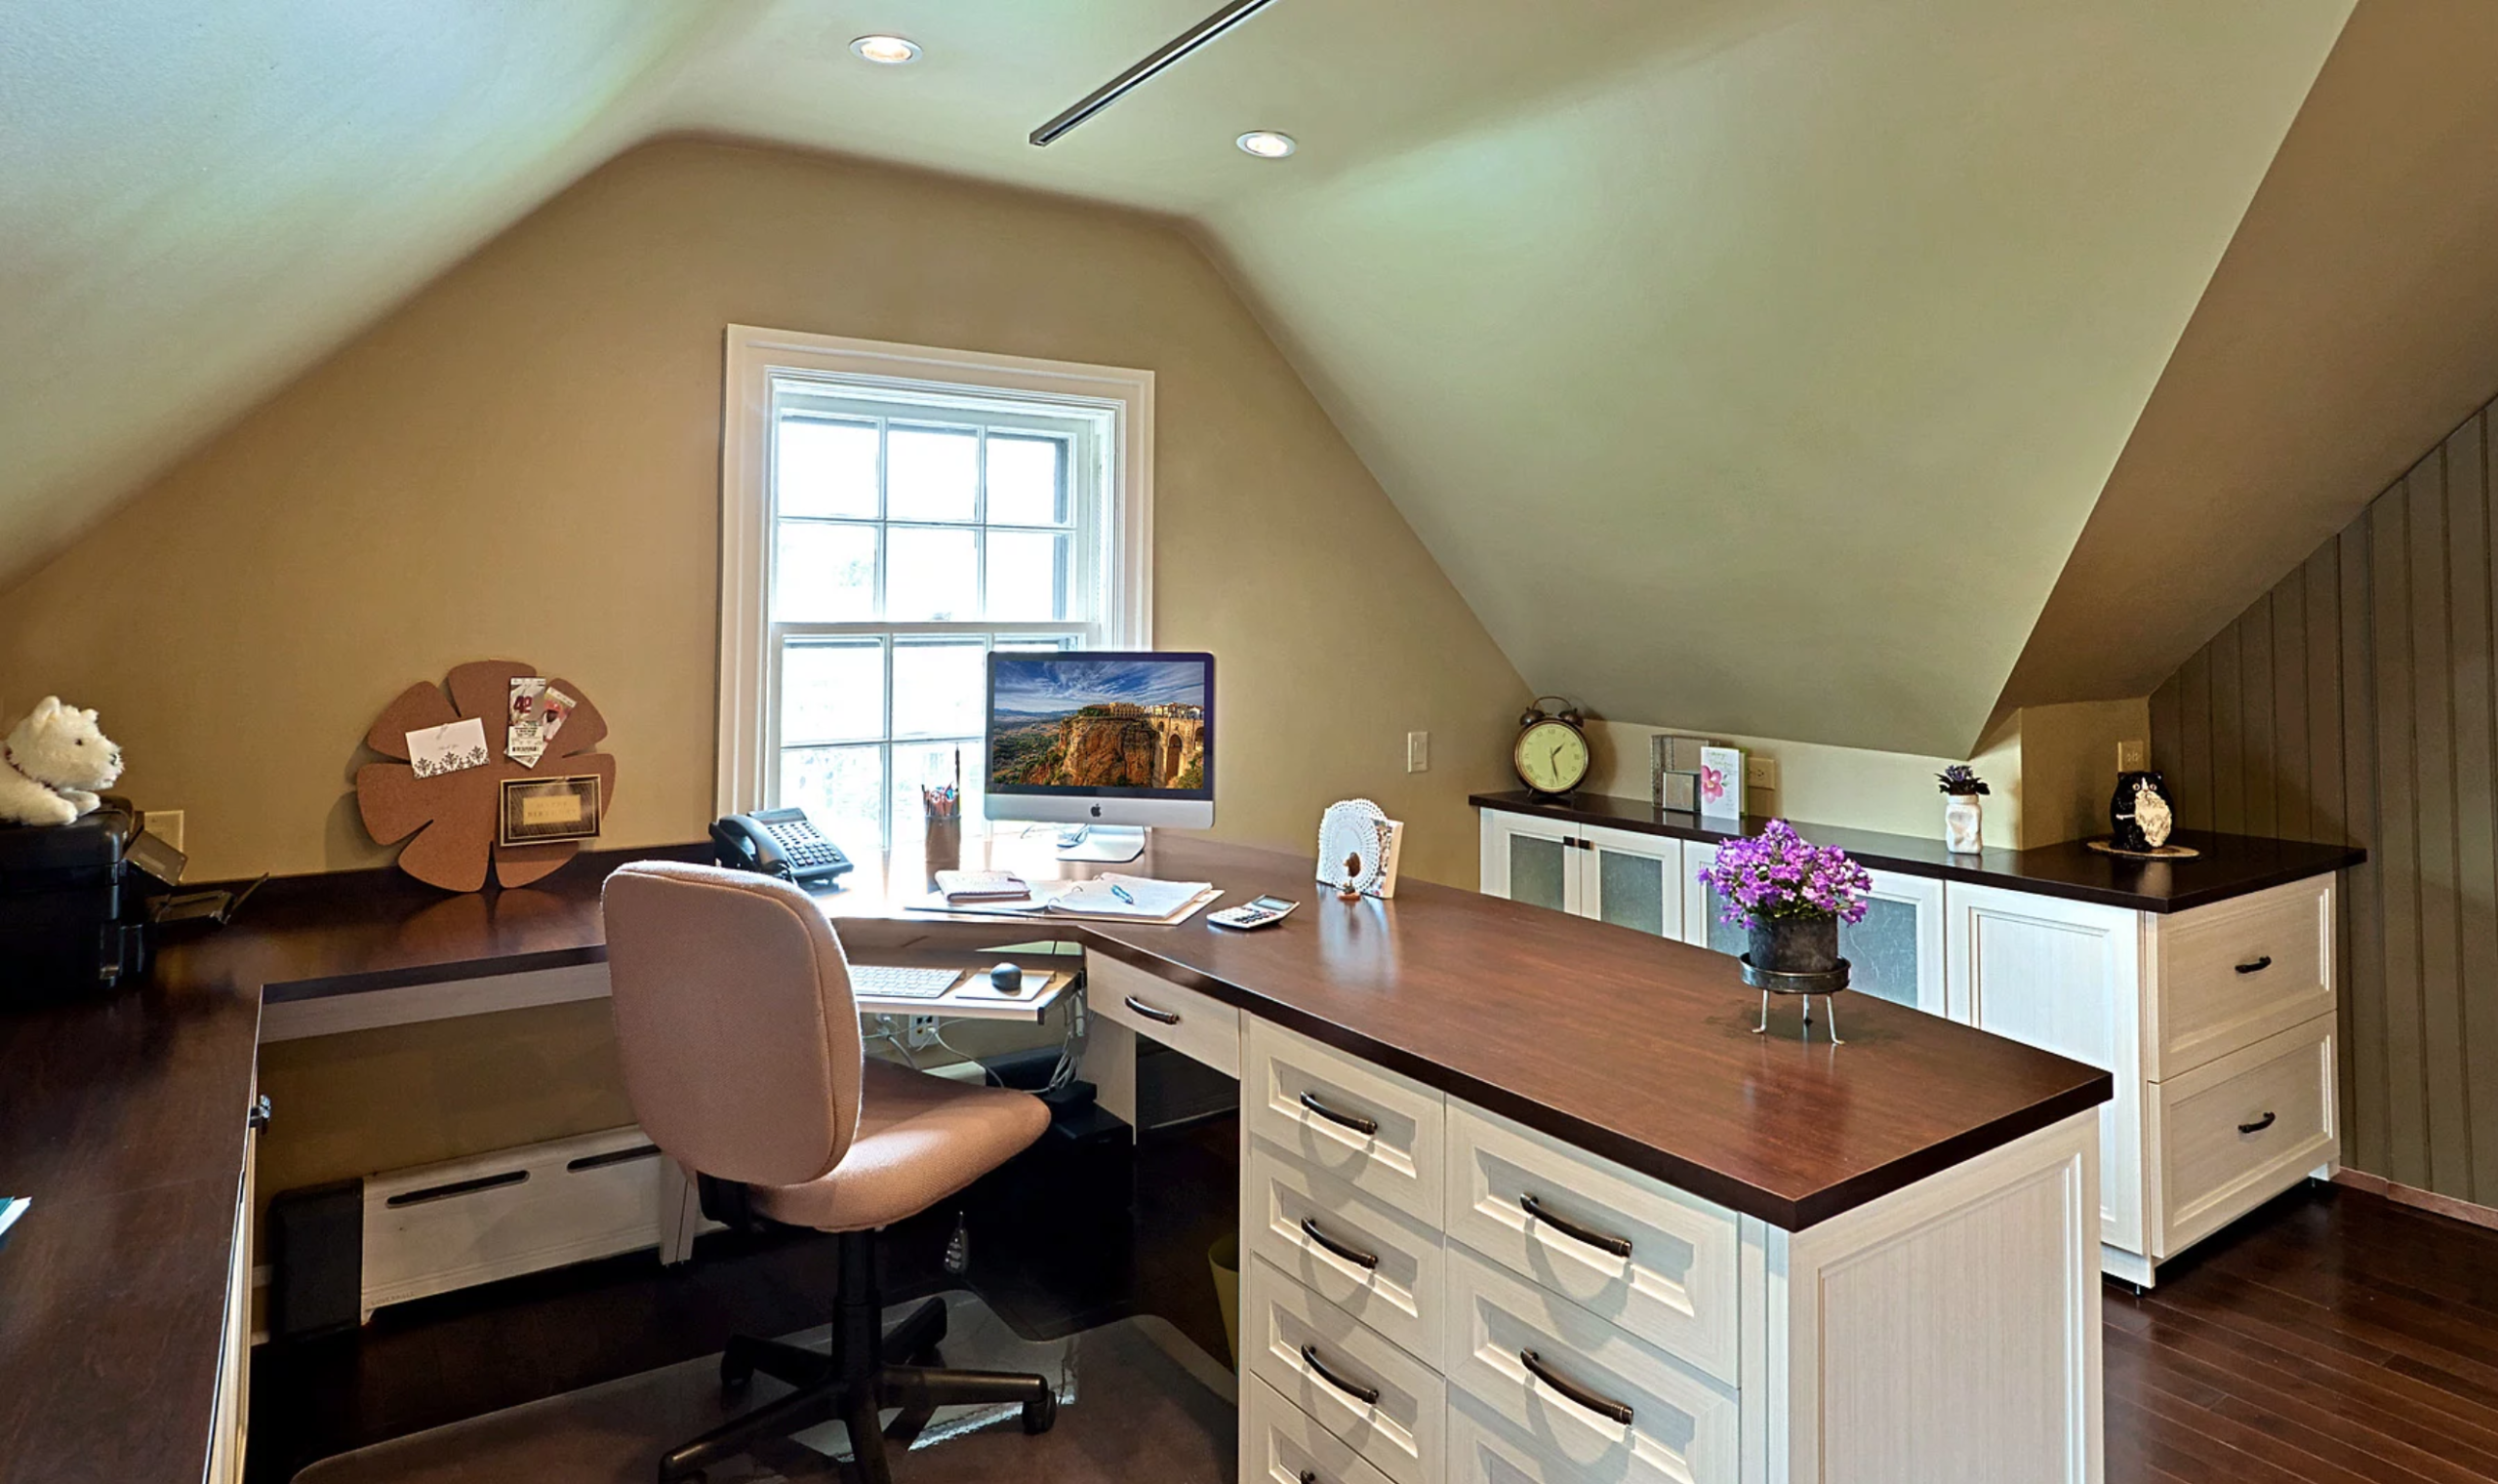 4 Ways To Improve Your Home Office